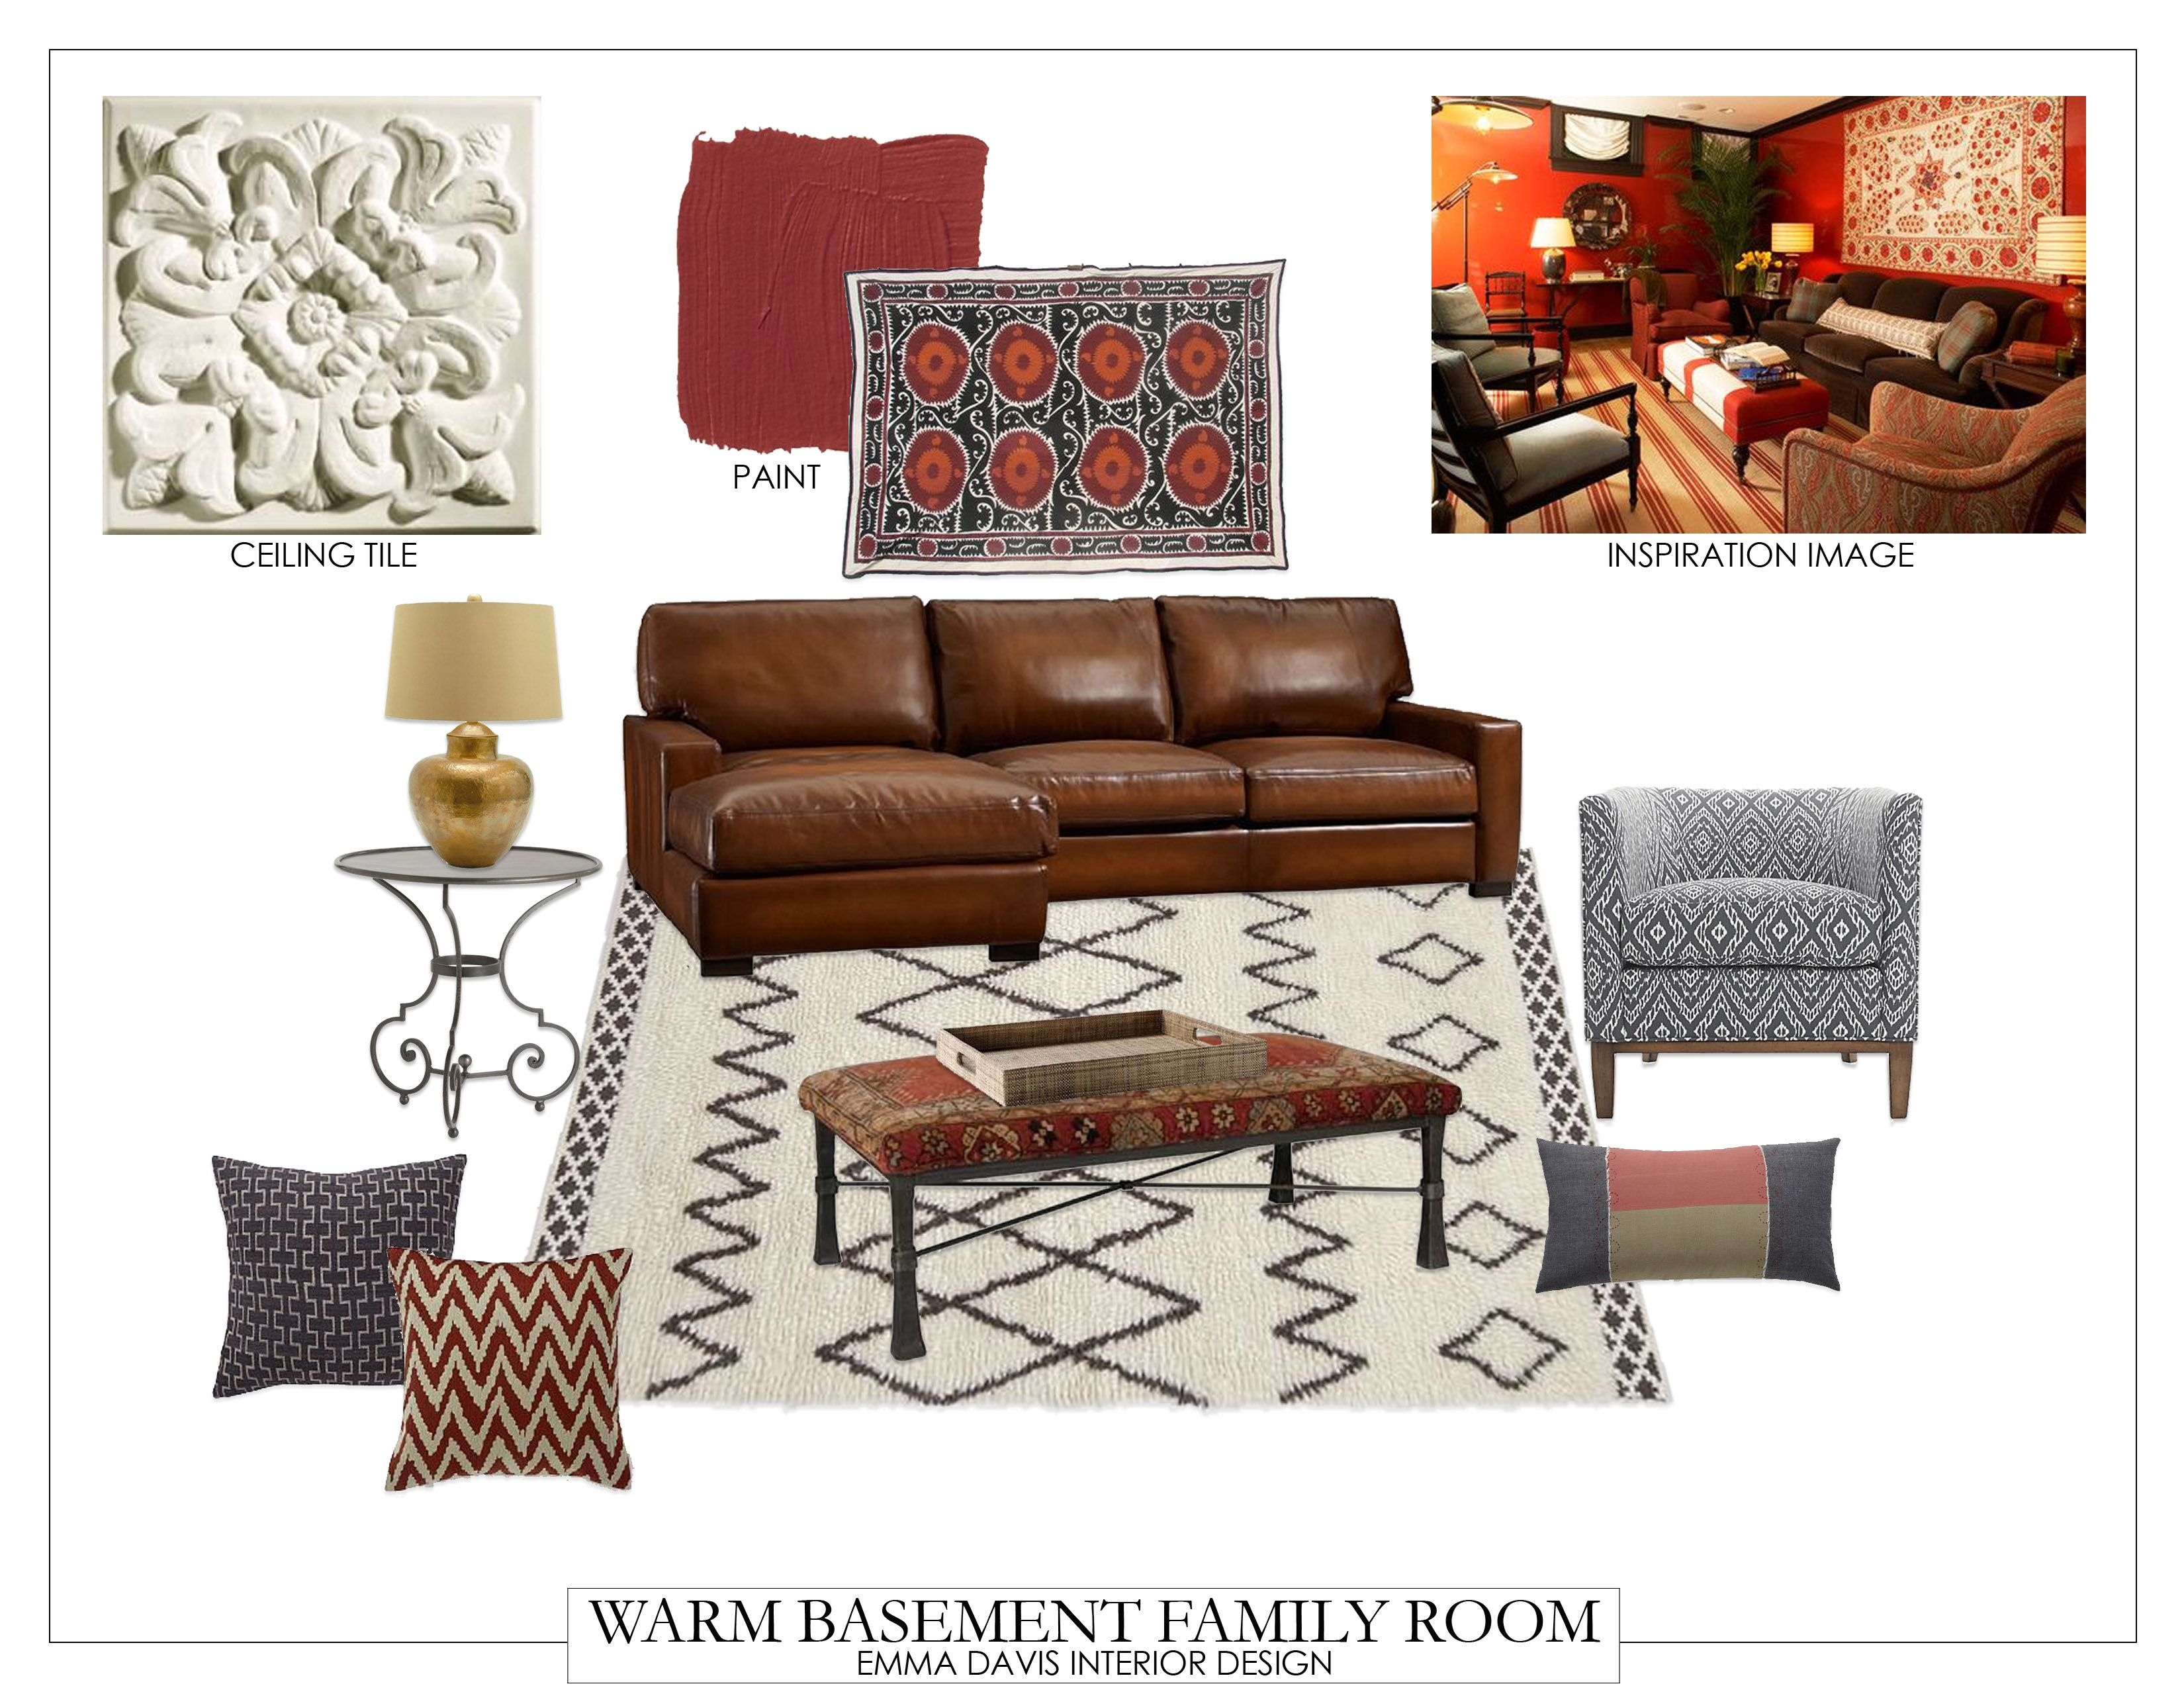 It's time to clean out the clutter and make use of your basement space! With this cozy basement-to-family room interior design guide, your new space is sure to be the ultimate crowd pleaser!